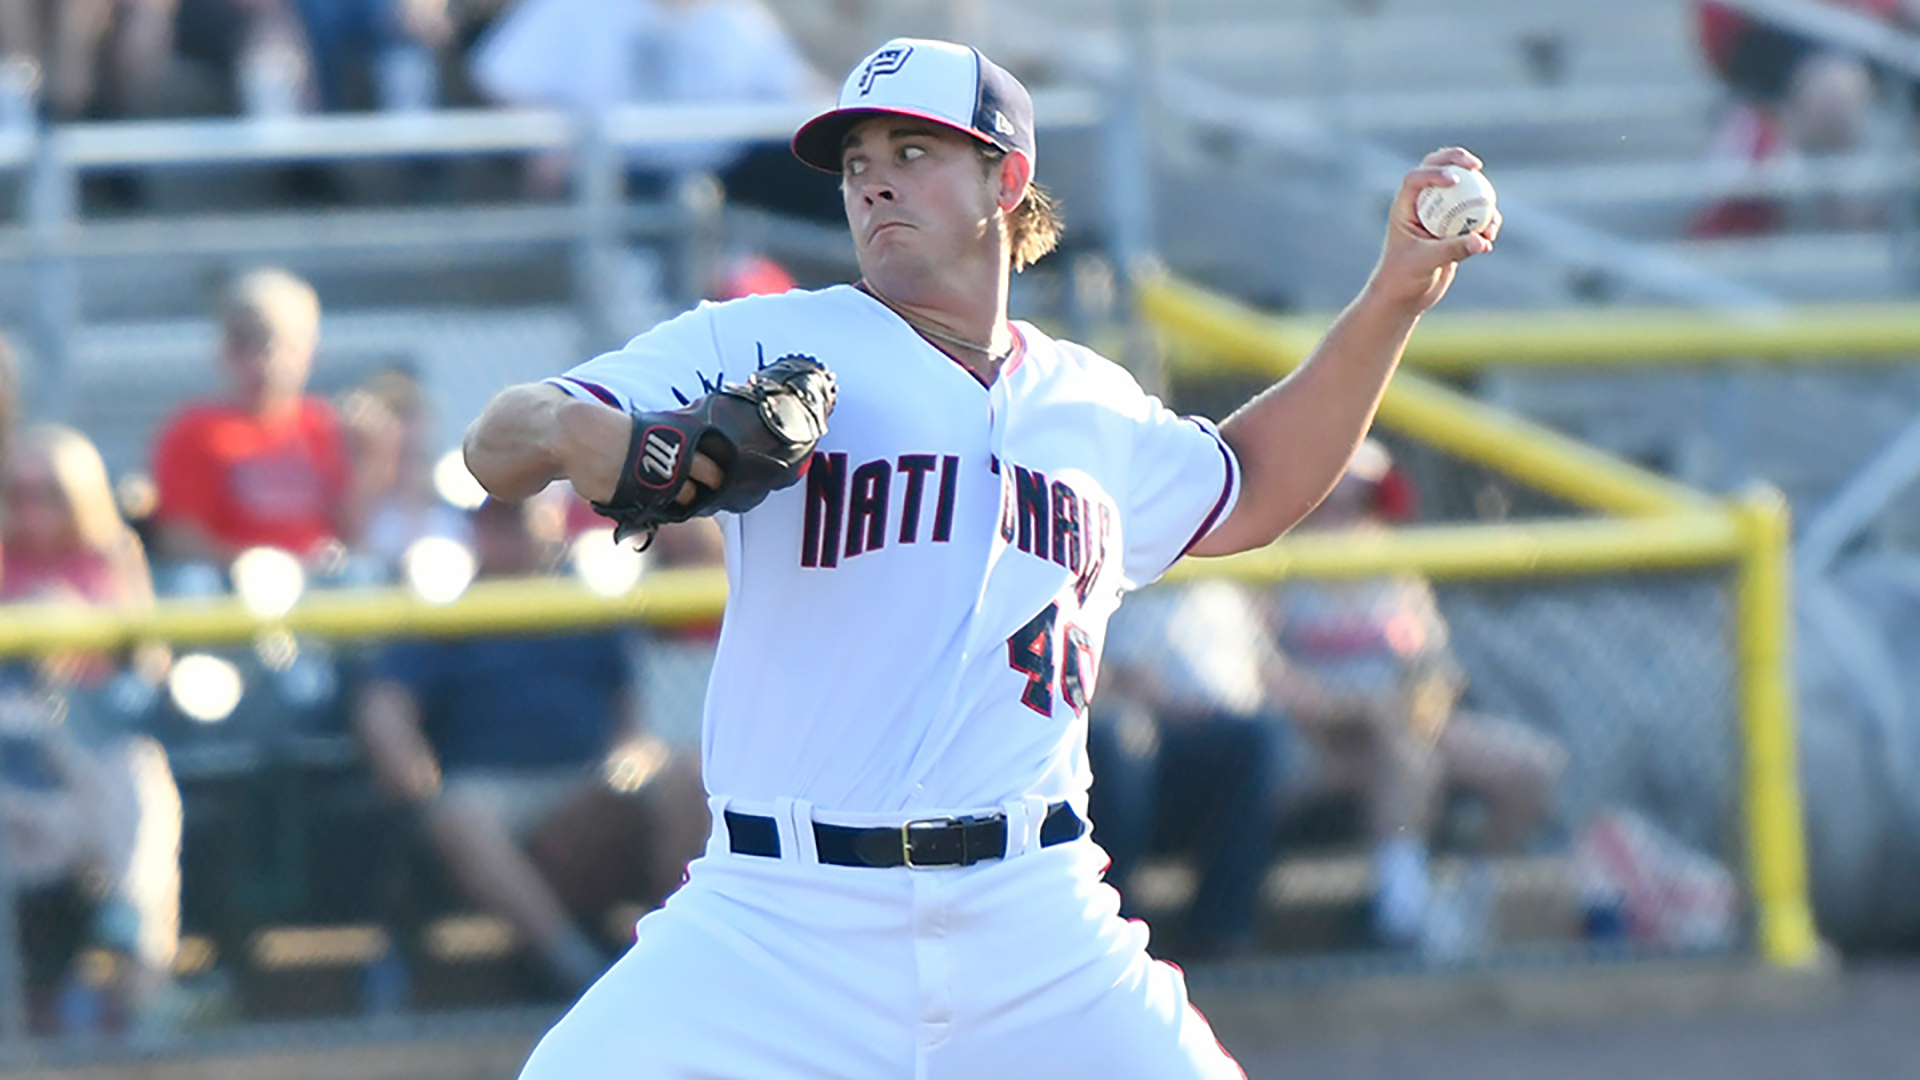 Ben Braymer Named Nationals Minor League Pitcher of the Year